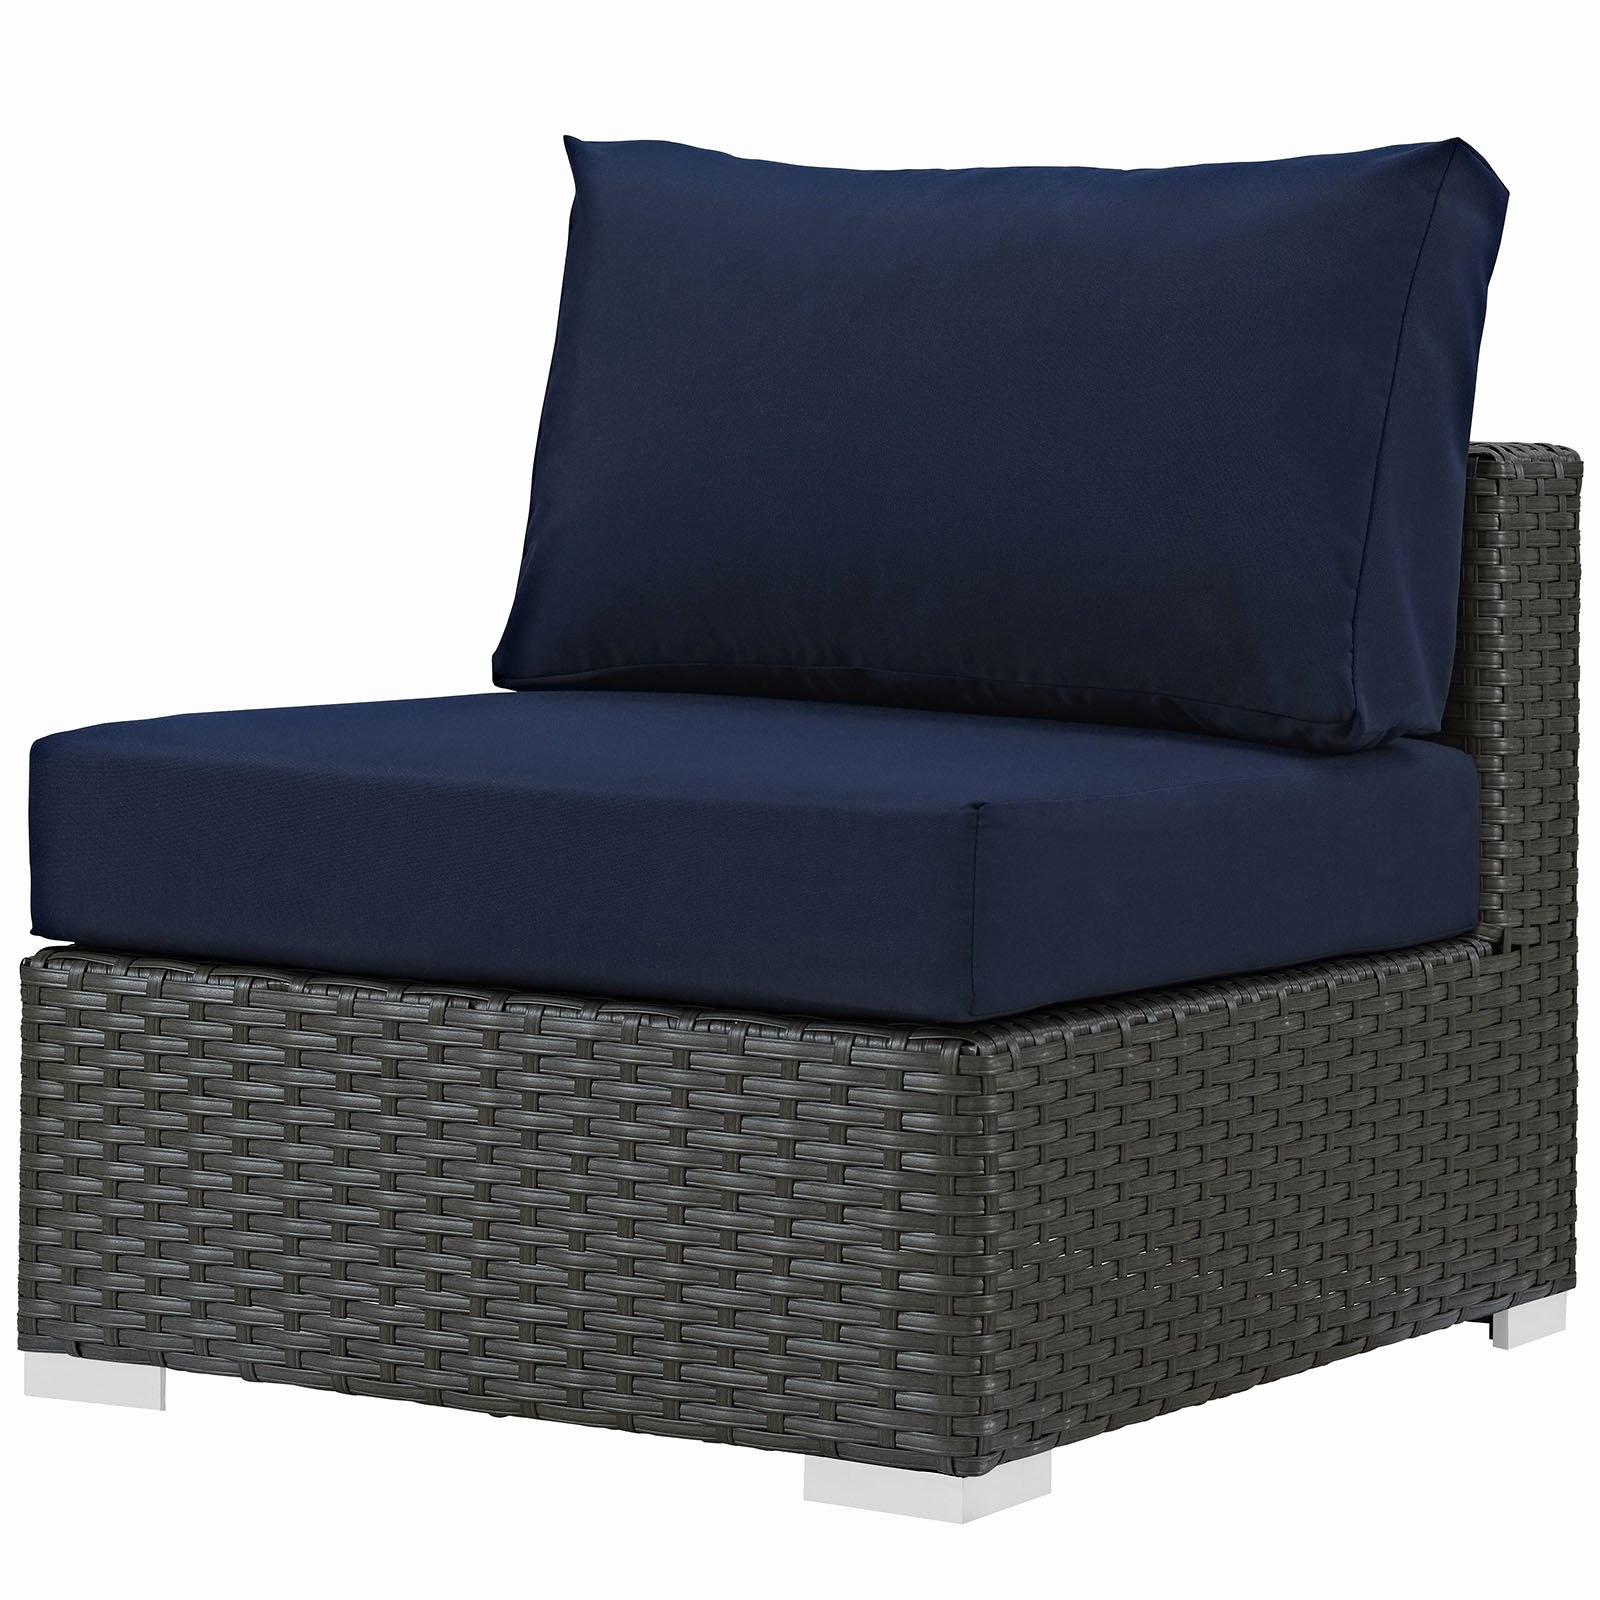 Deep Seating Replacement Cushions For Outdoor Furniture Universal